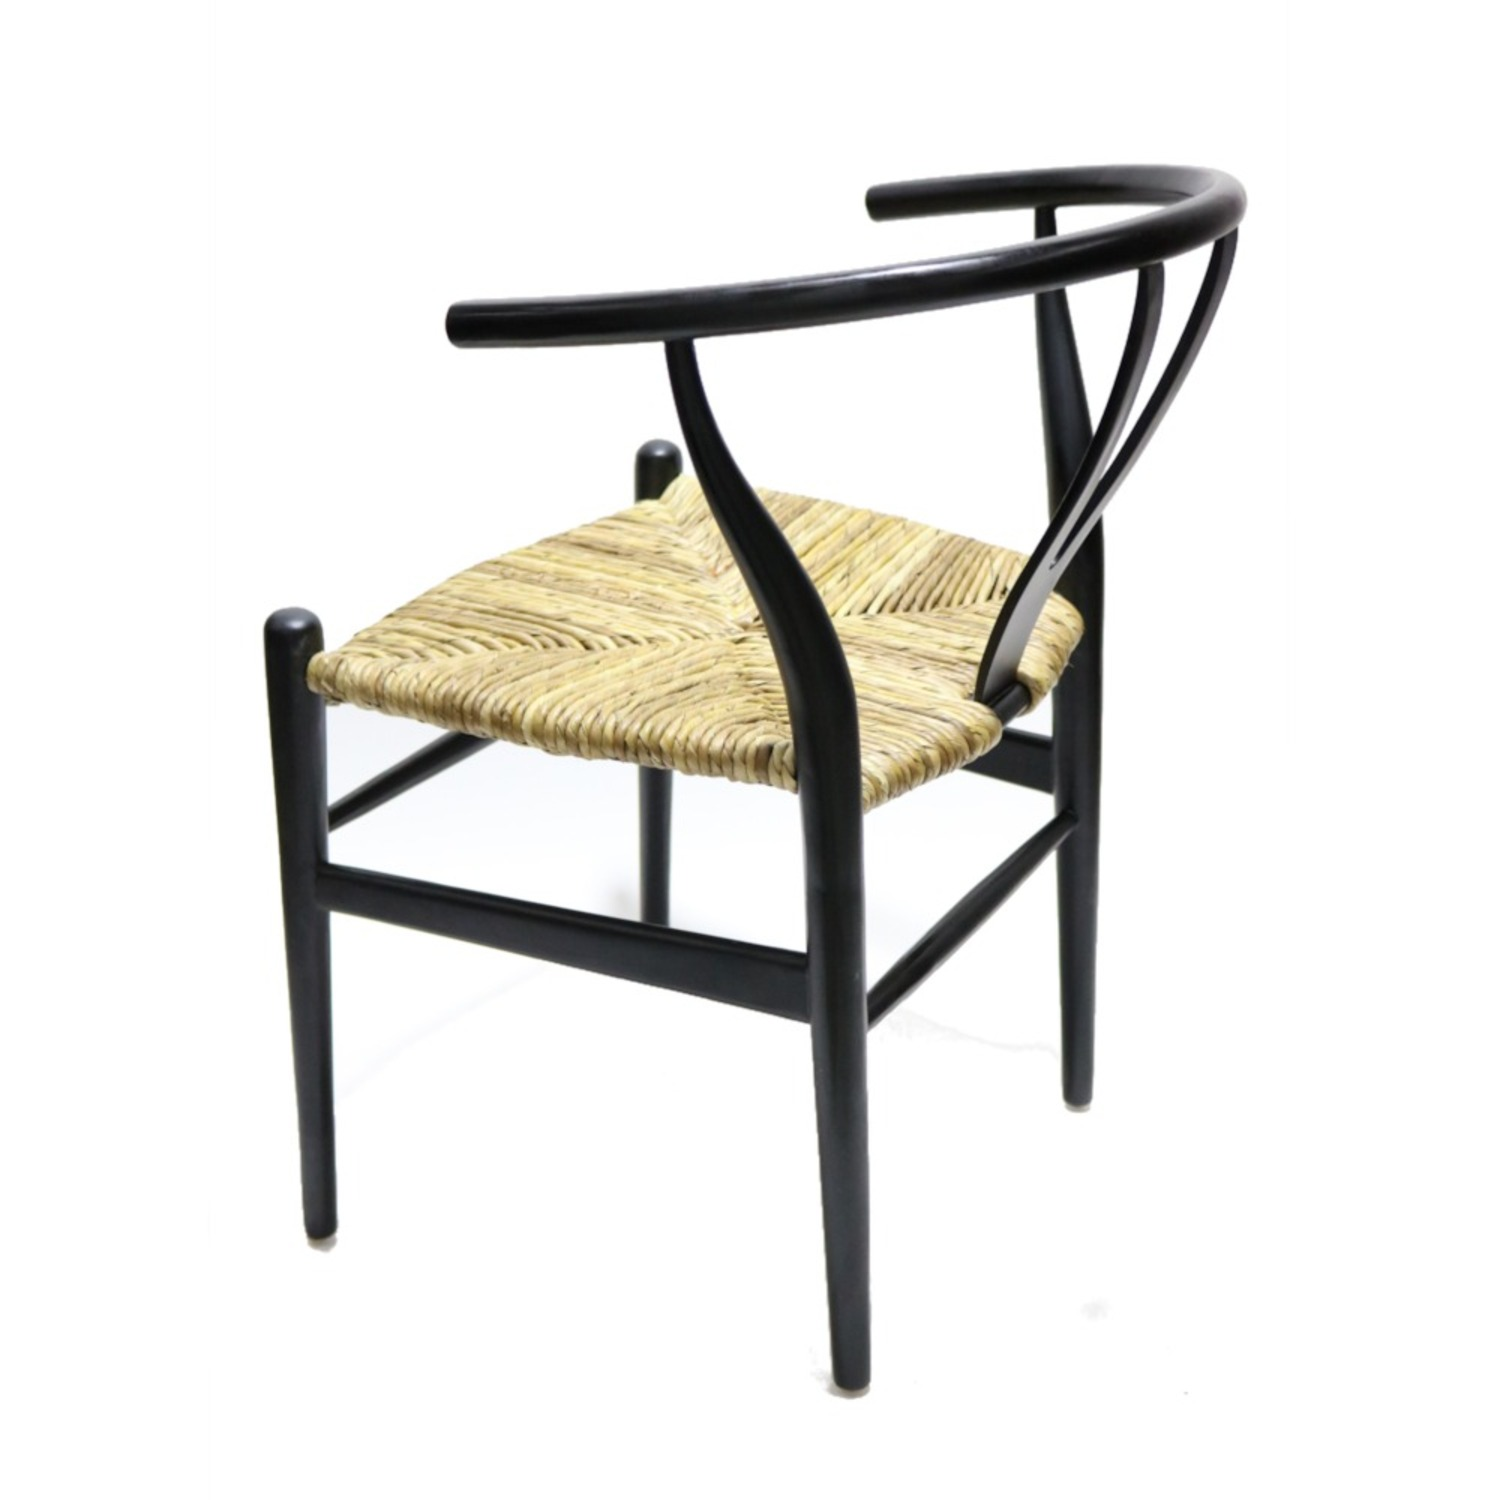 Dining Chair In Black Frame & Natural Hemp Seat - image-4